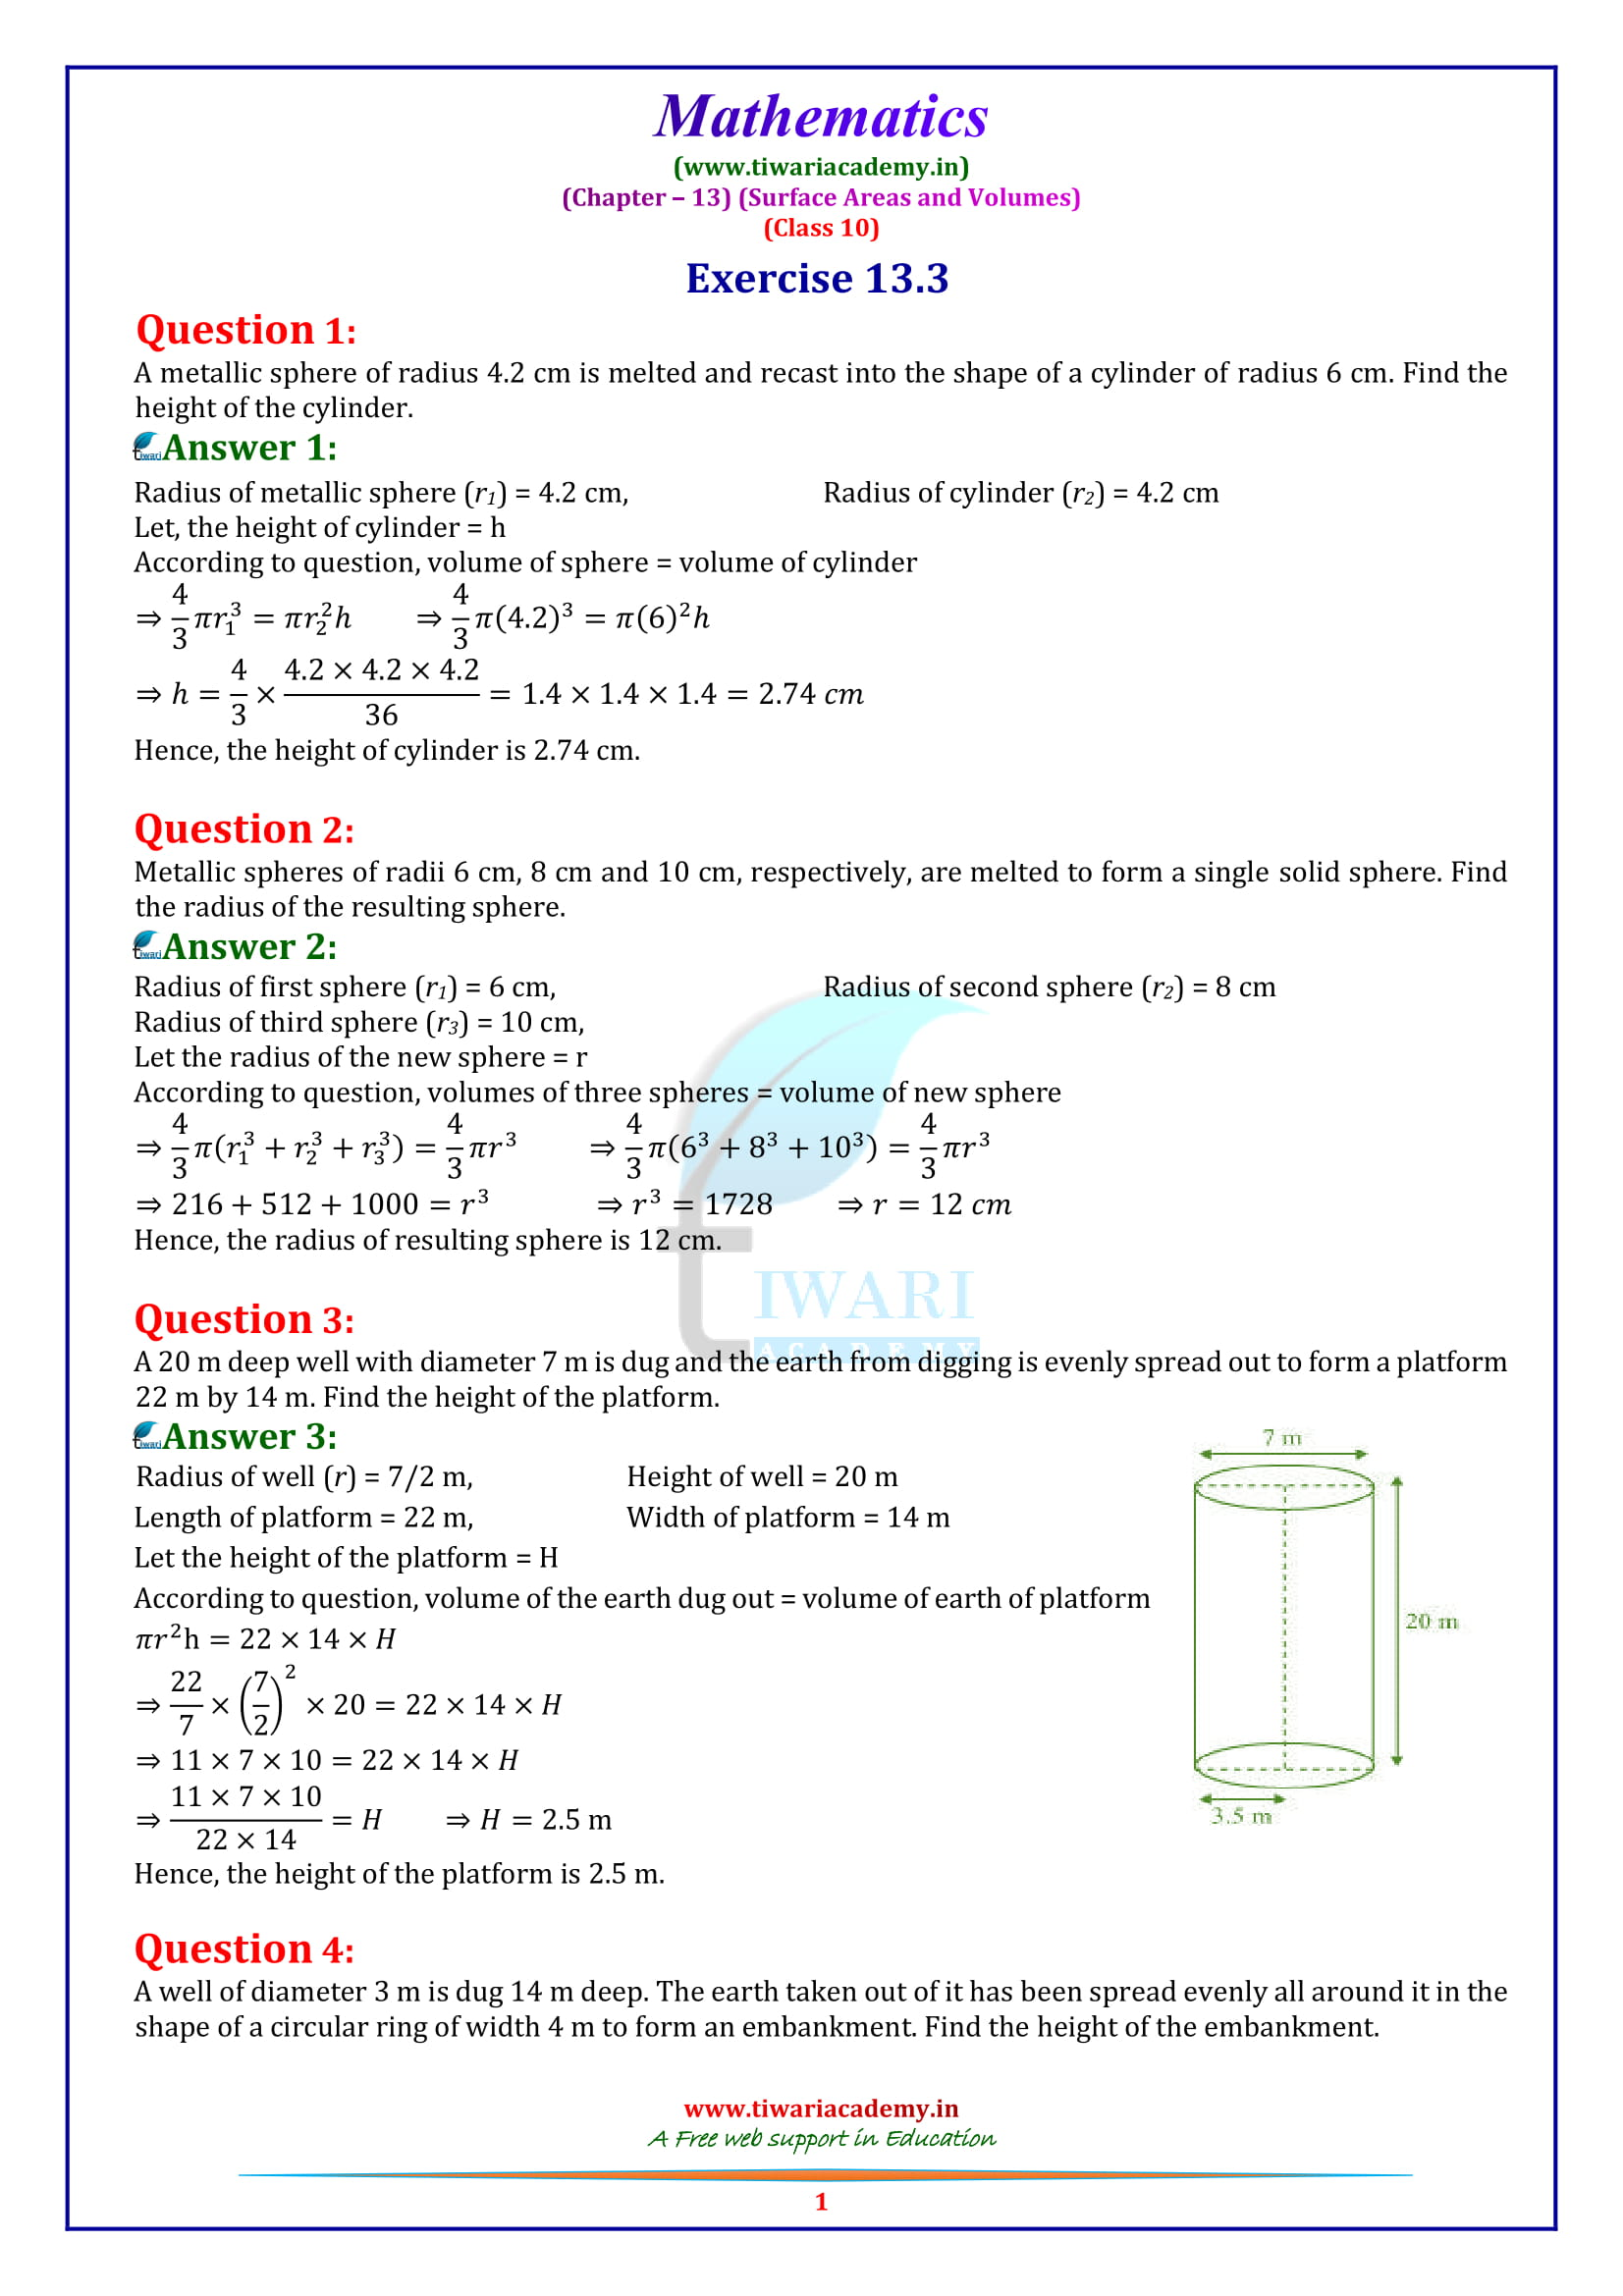 NCERT Solutions for class 10 maths chapter 13 exercise 13.3 in english medium